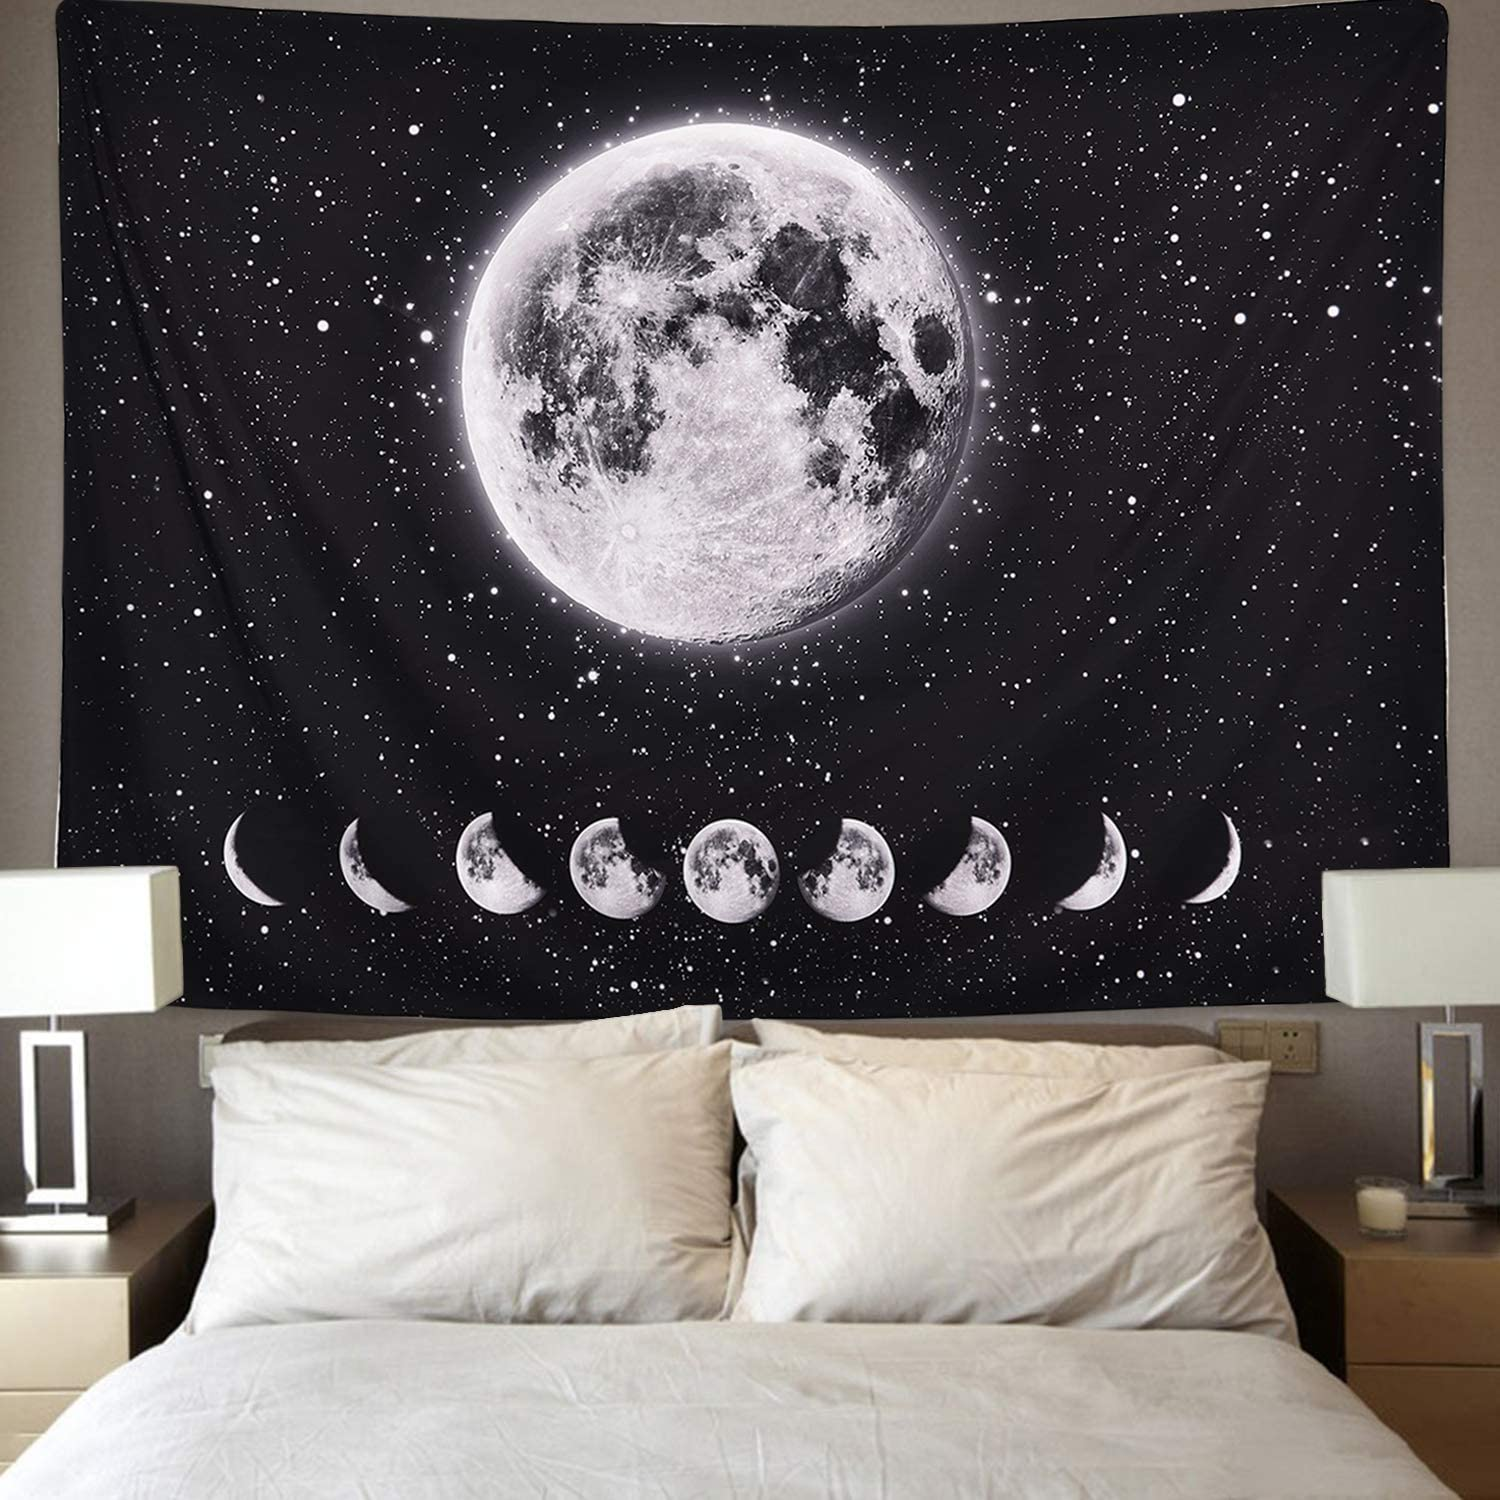 Galaxy Night Sky Tapestry Starry Space Tapestry Universe Stars Sky Tapestry Planet Tapestry for Living Room Bedroom Moon Lunar Eclipse Tapestry